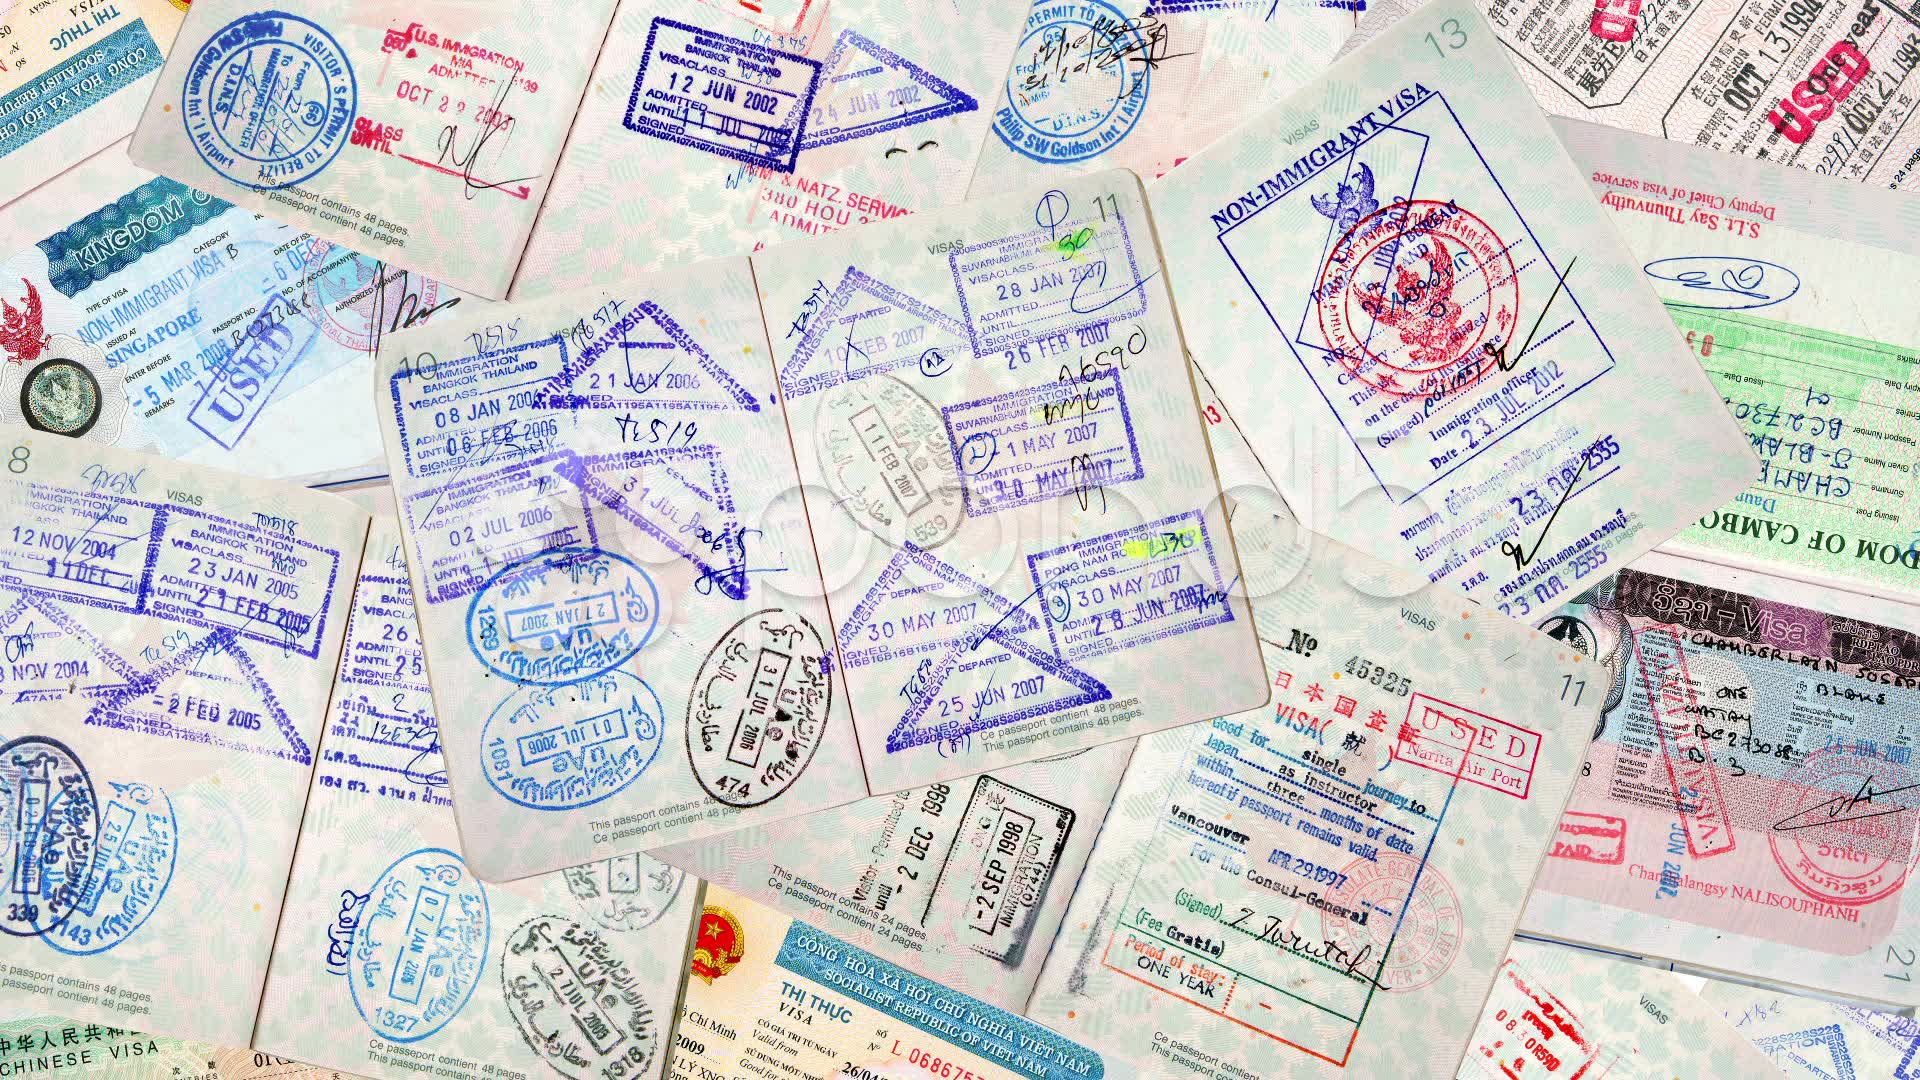 A pile of passports with visa stamps.